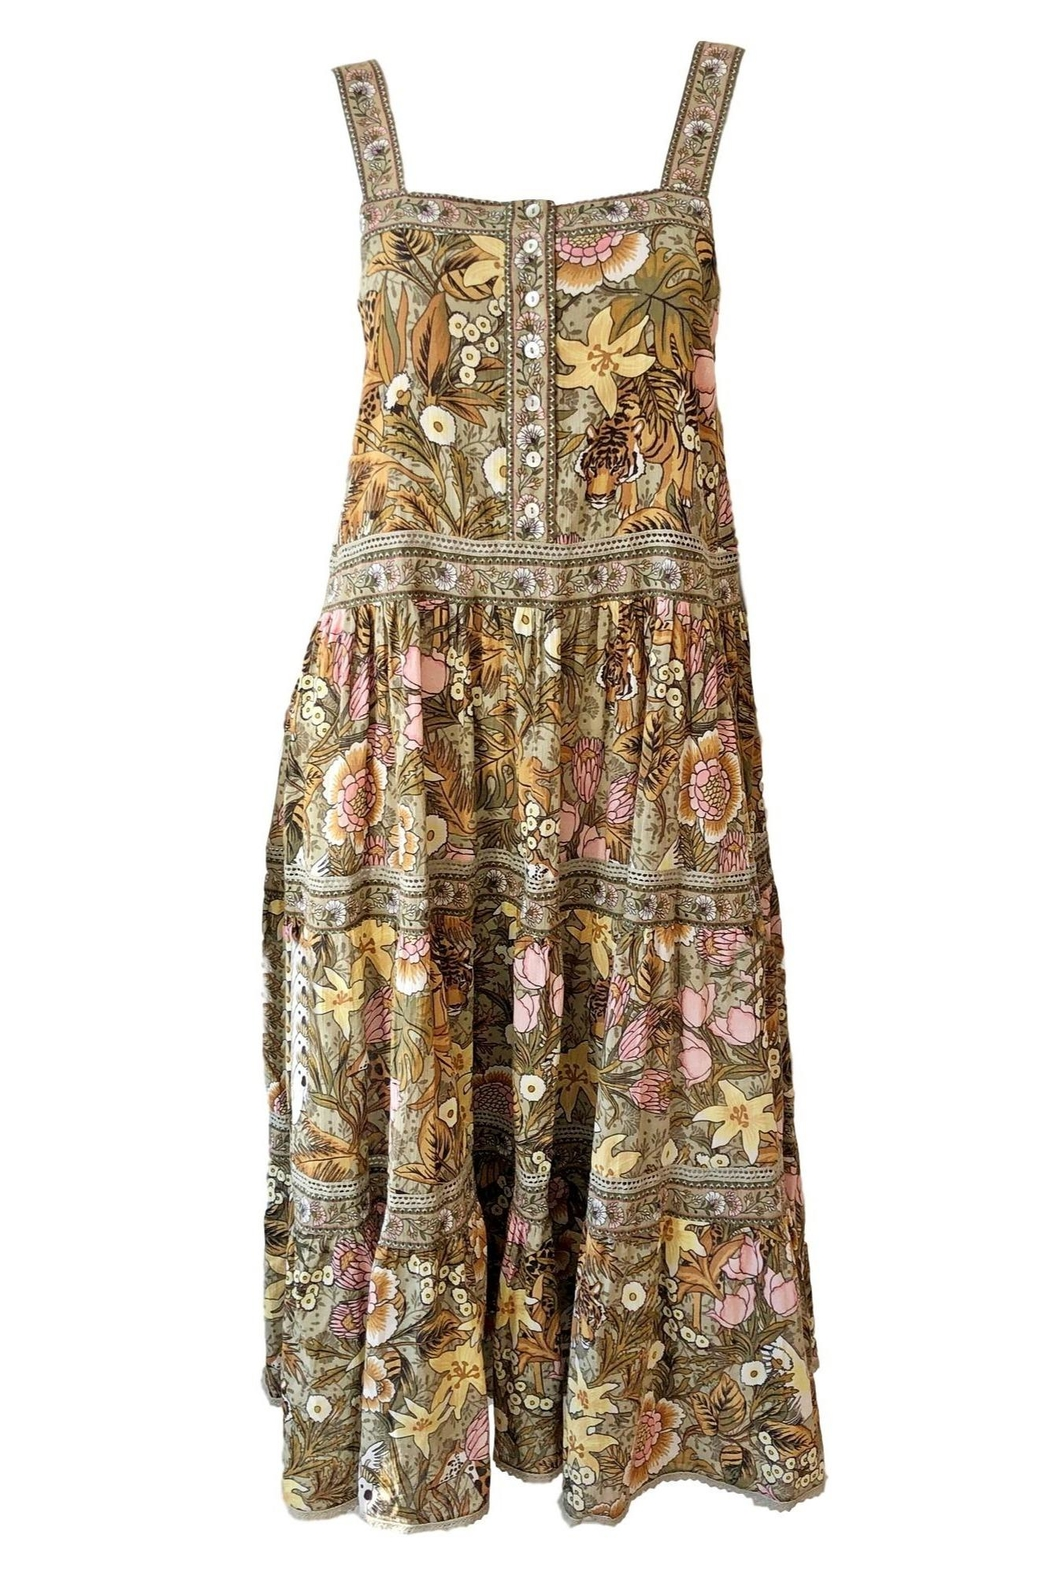 ef51af66956 Spell Designs Jungle Midi Dress from Greenville by Augusta Twenty ...